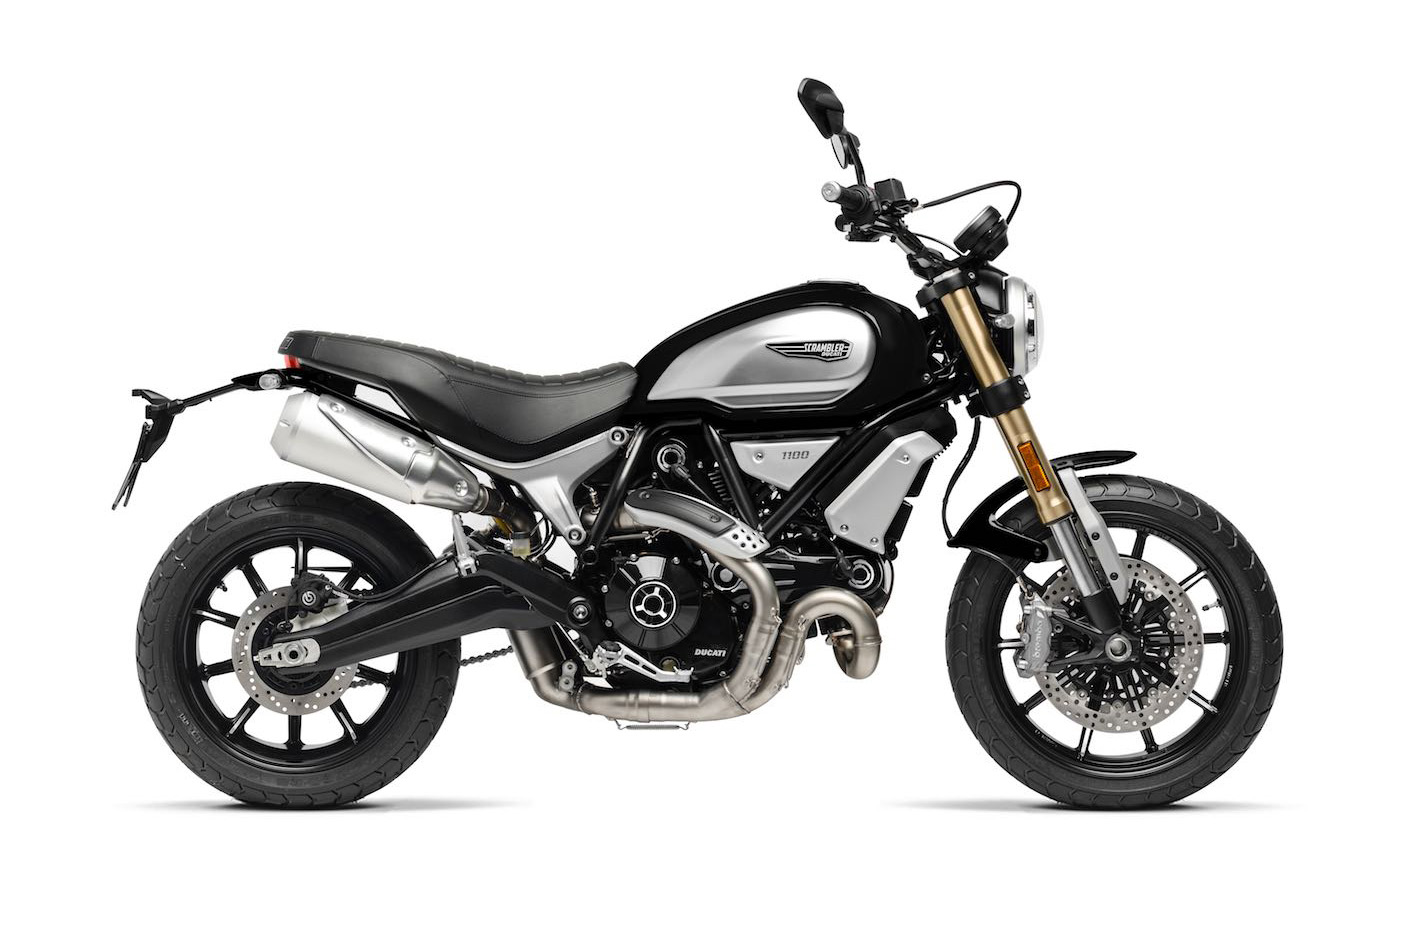 2018-ducati-scrambler-1100-first-look-fast-facts-1